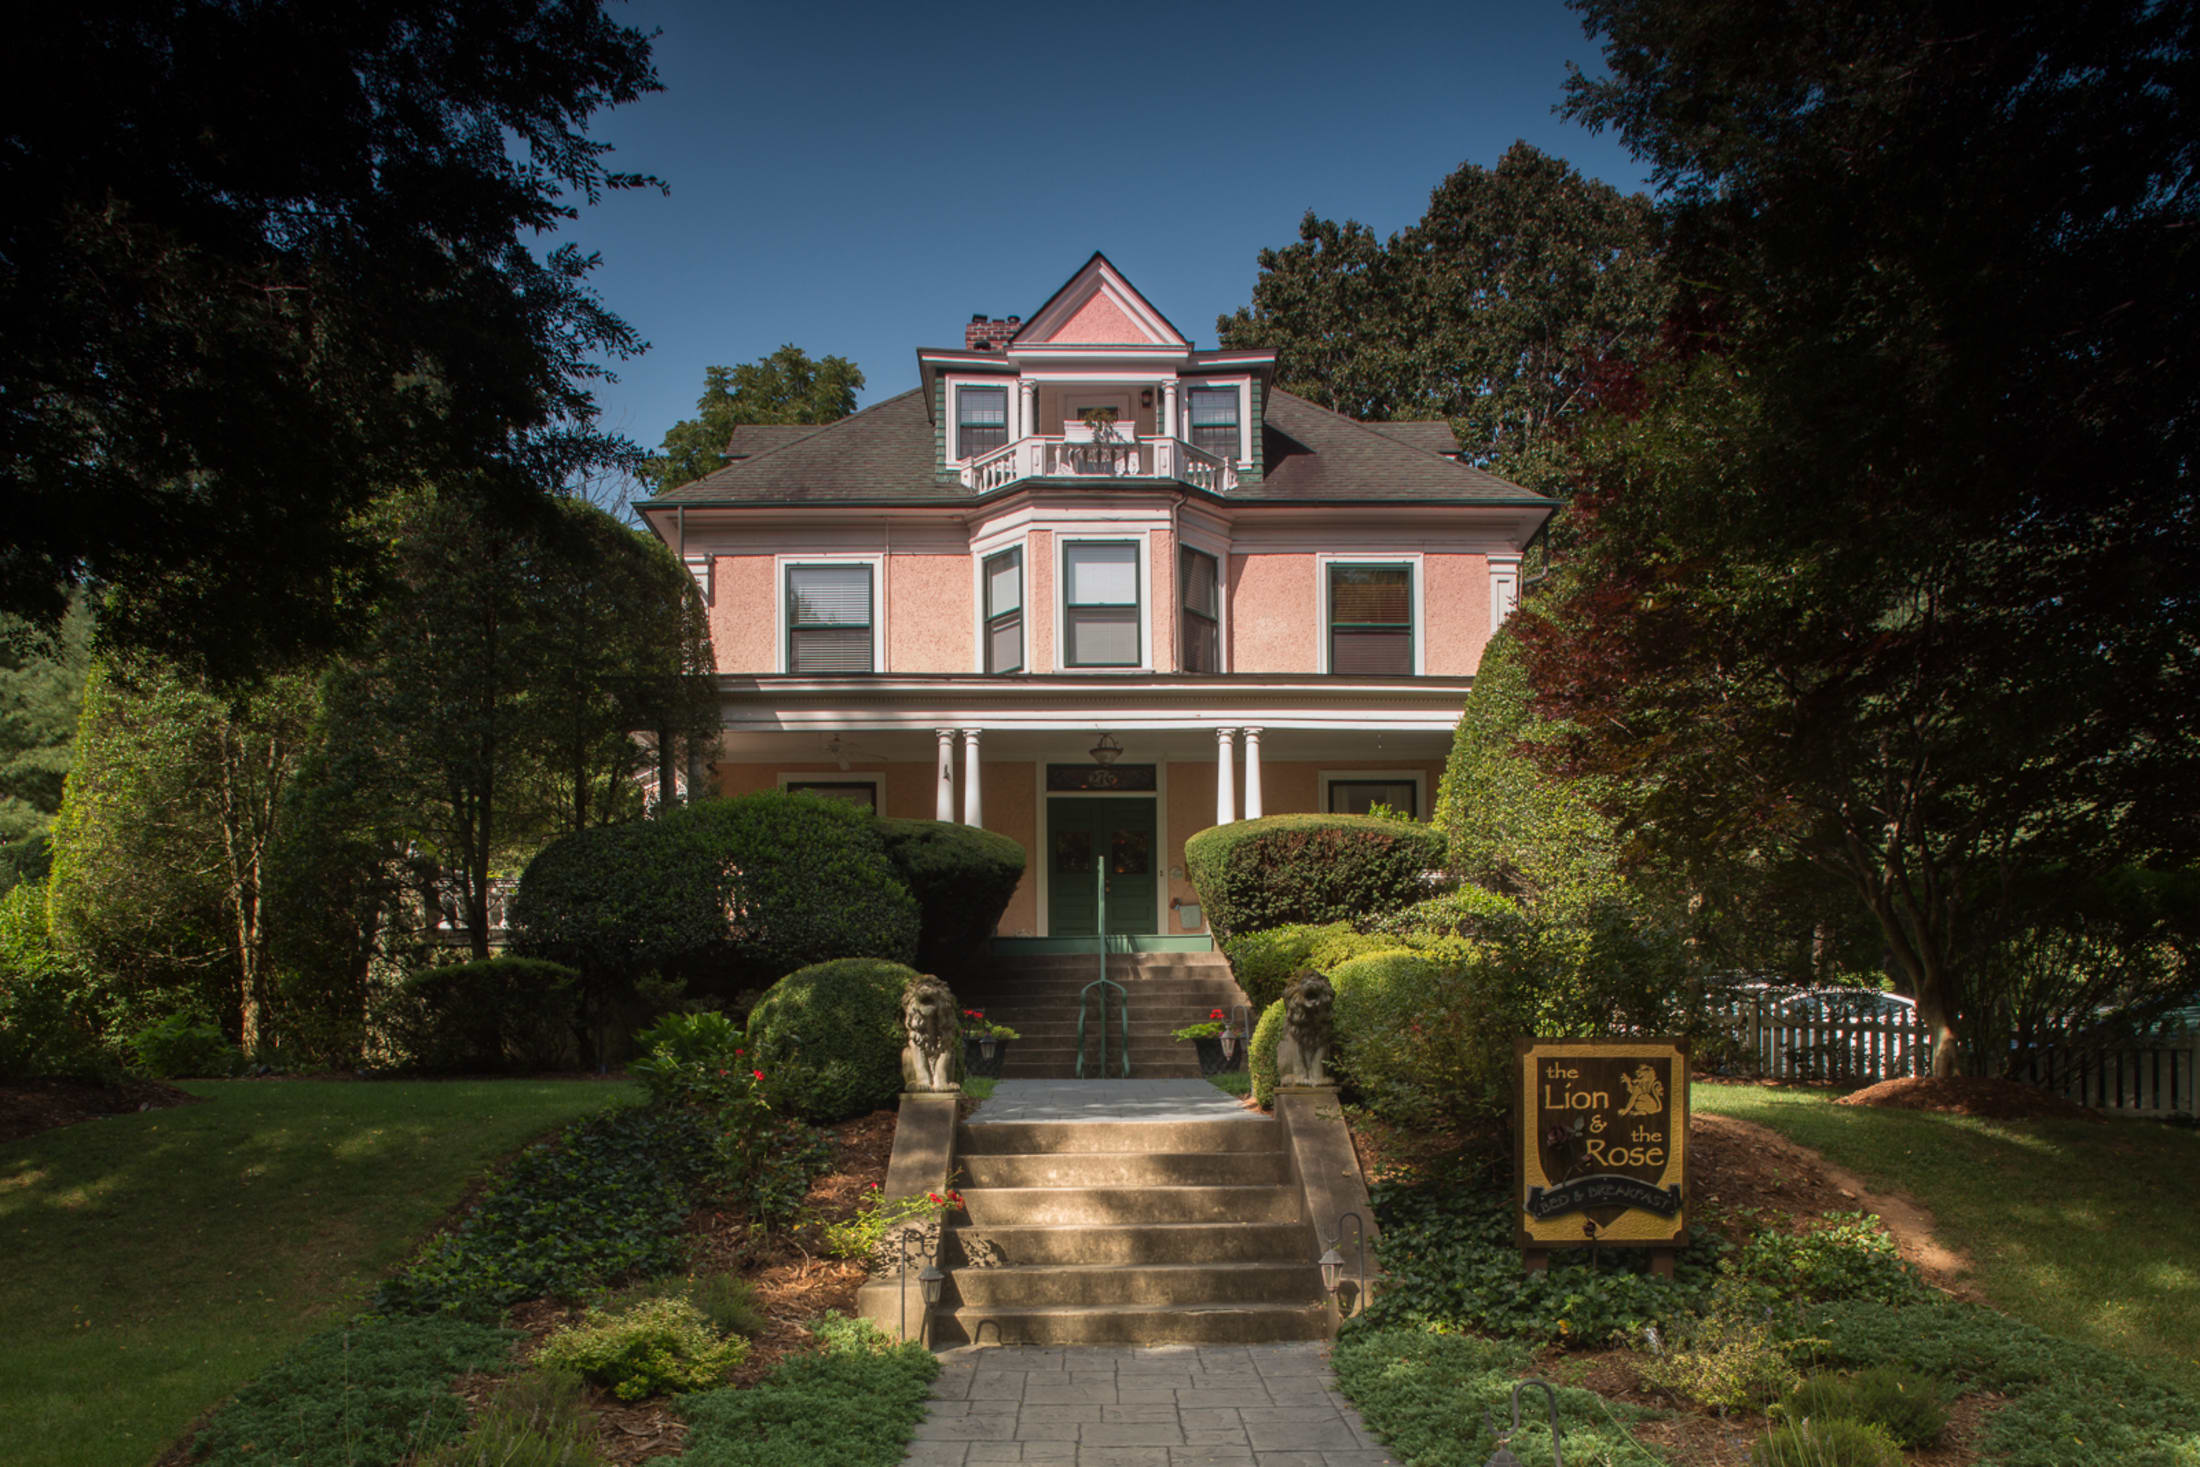 The Lion And The Rose Bed And Breakfast Asheville Nc